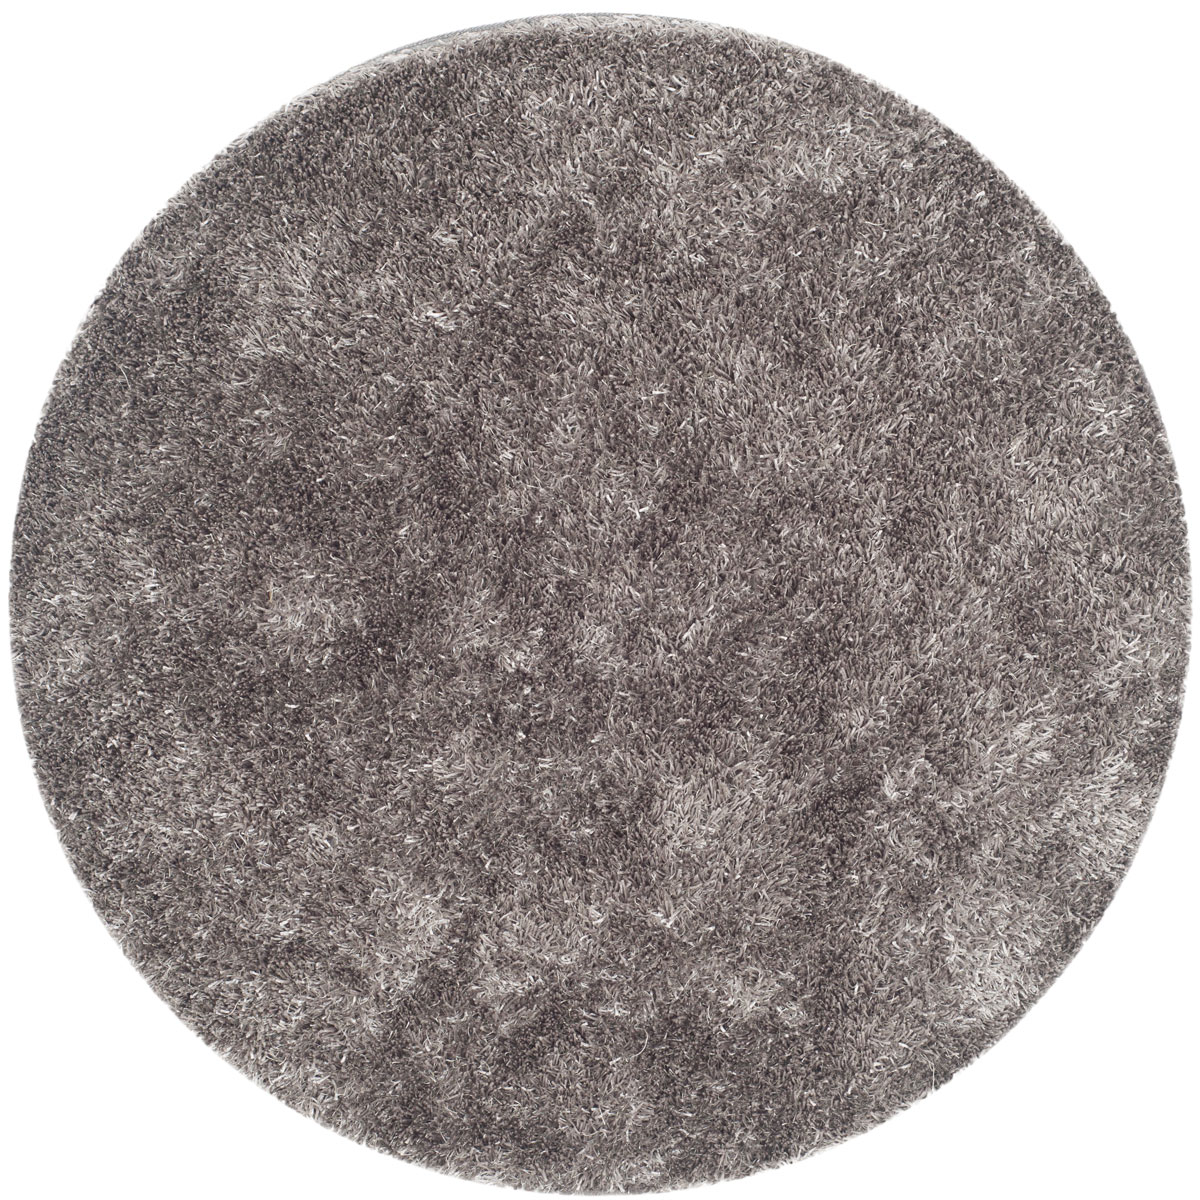 Plush Pile Grey Shag Rug New Orleans Collection Safavieh